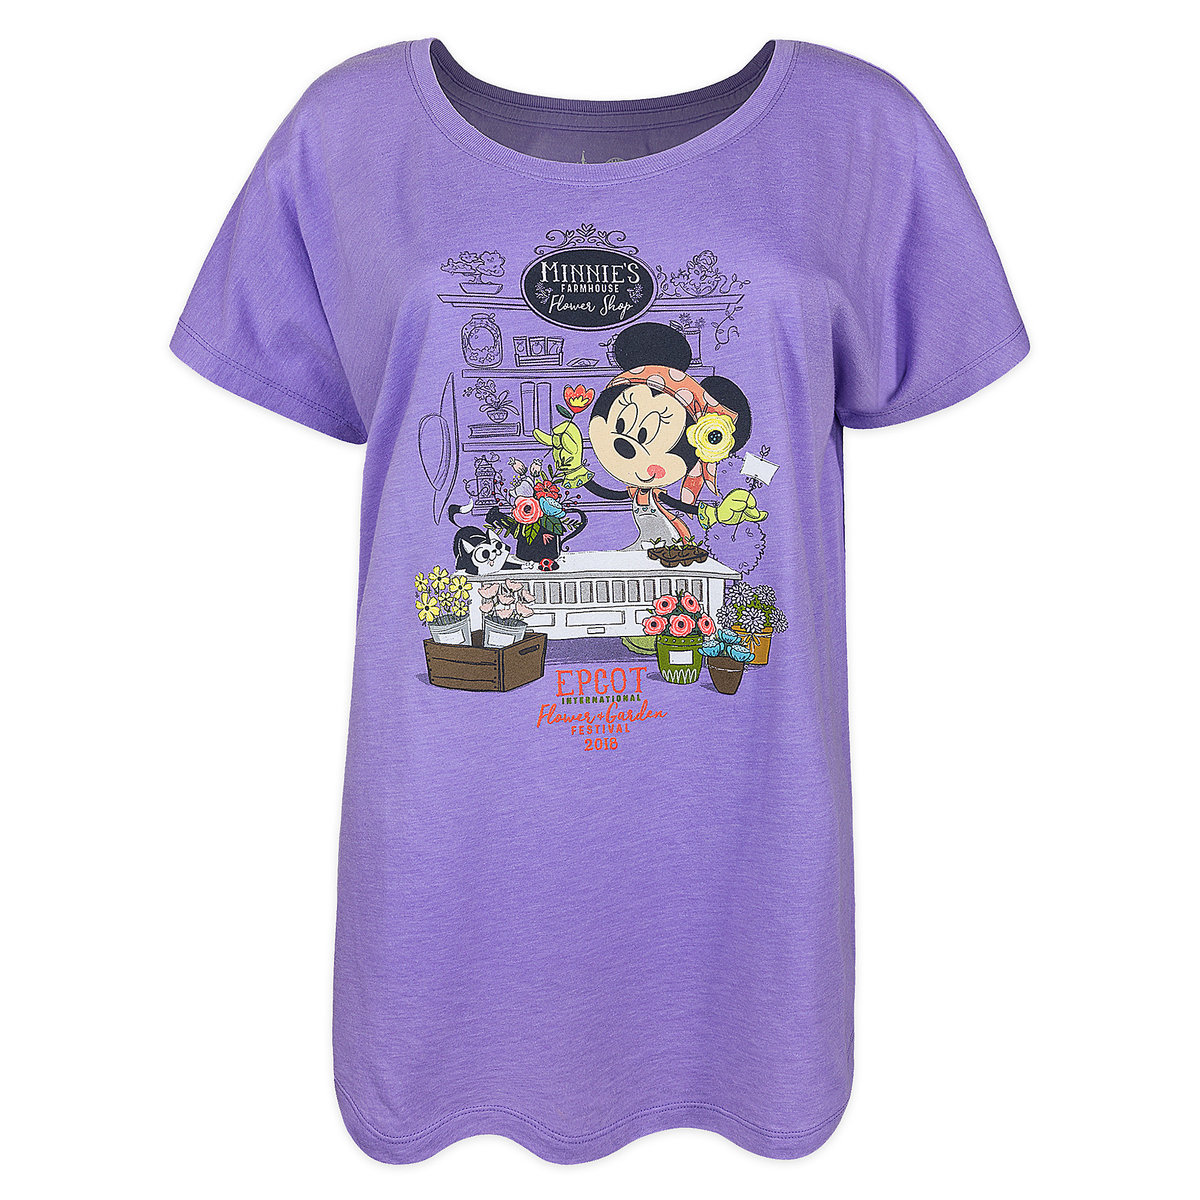 This Weeks Merchandise Finds on ShopDisney! 3